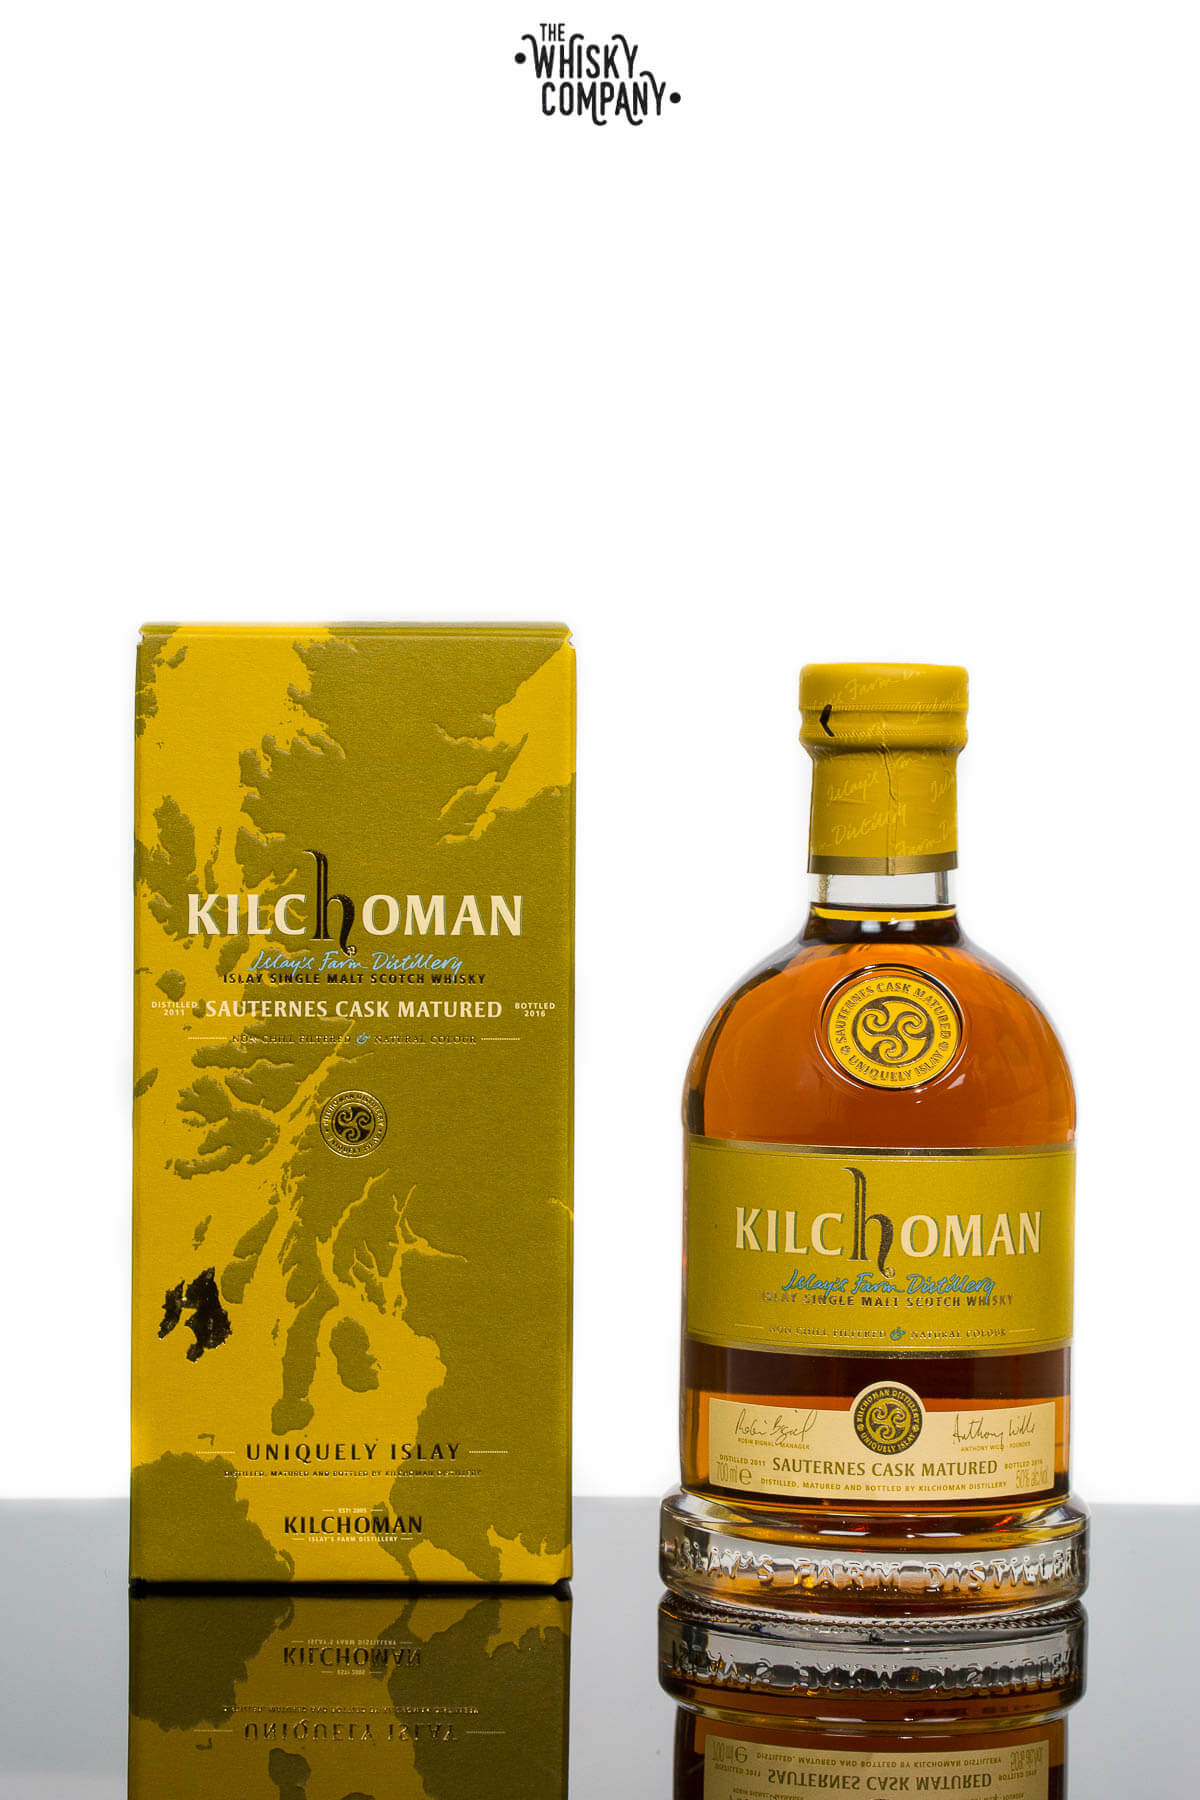 Kilchoman 2011 Sauternes Cask Matured Islay Single Malt Scotch Whisky